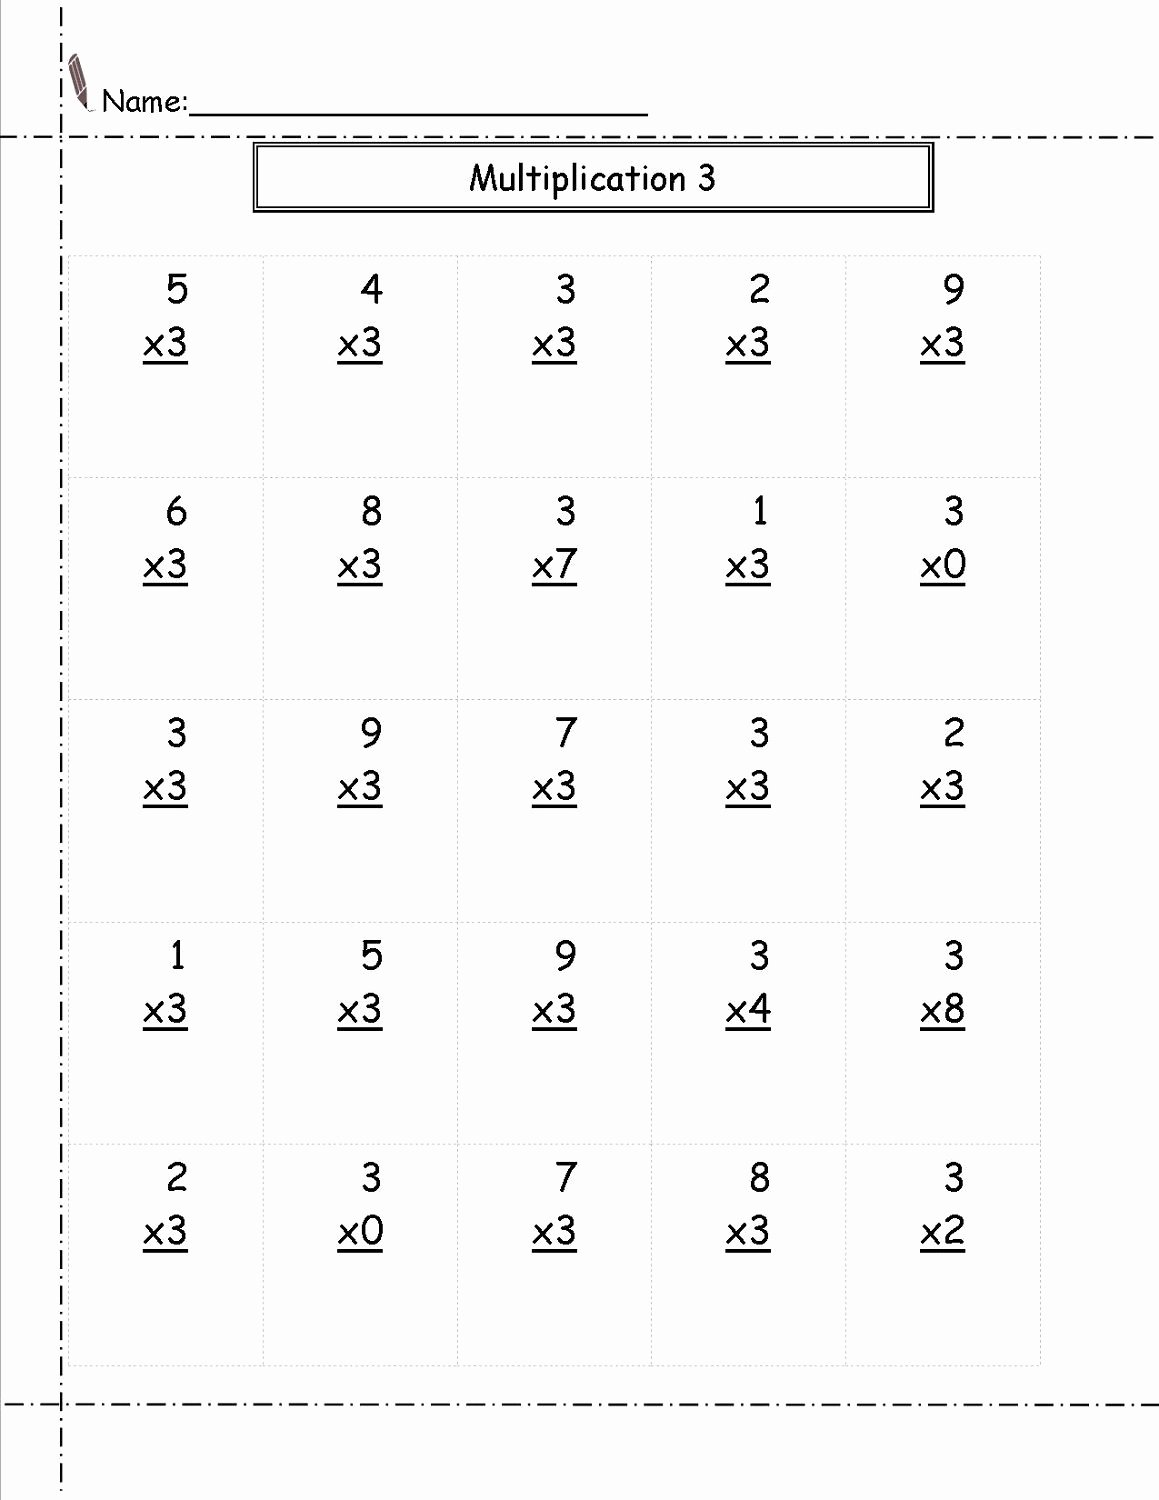 Multiplication Worksheets 3's Fresh Multiply by 3 Worksheet Free